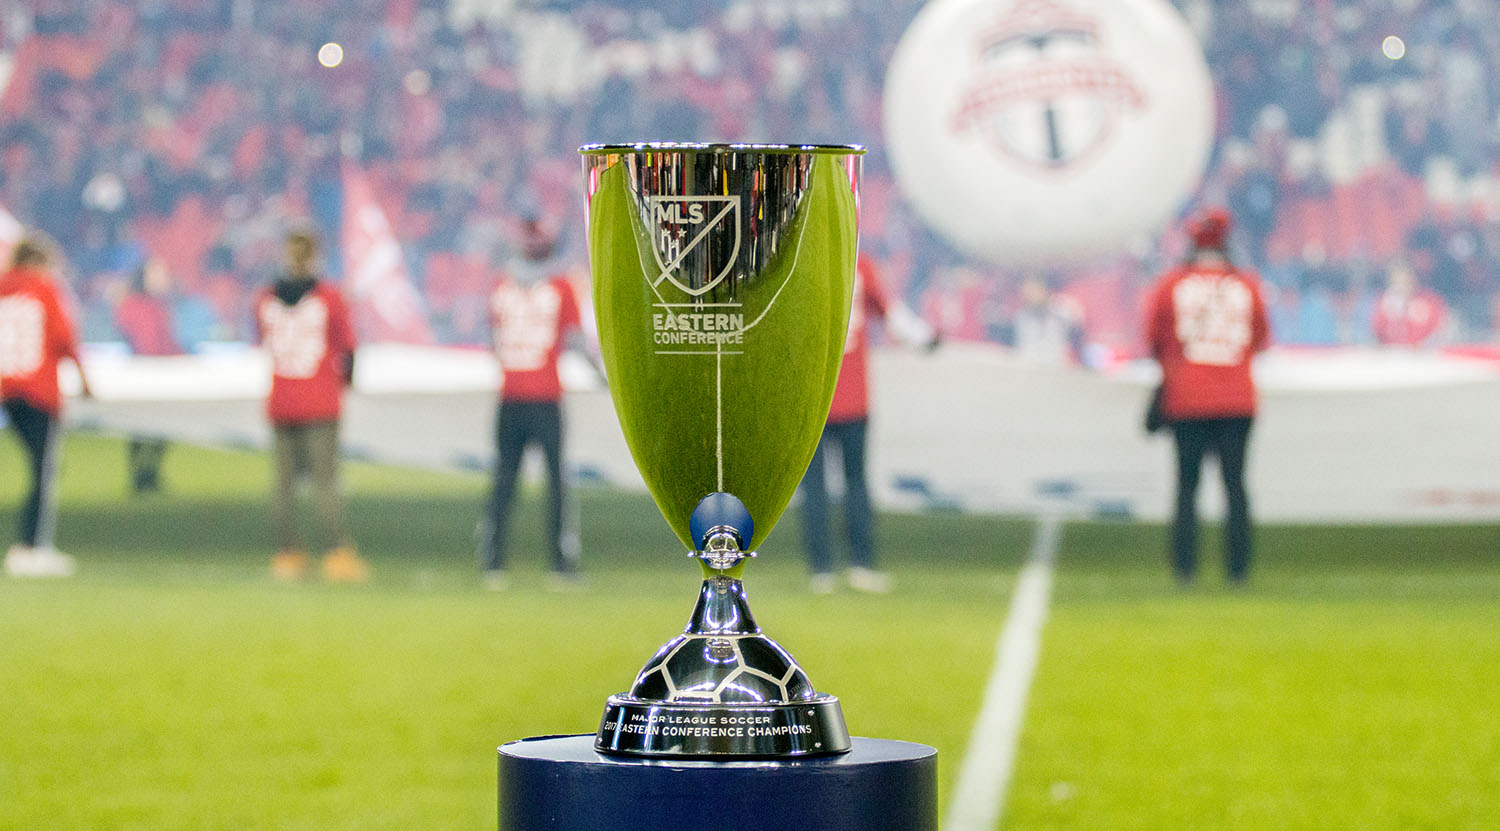 The Major League Soccer Eastern Conference Trophy was up for grabs at BMO Field between Toronto FC and the Columbus Crew in 2017.Image by Dennis Marciniak of denMAR Media.